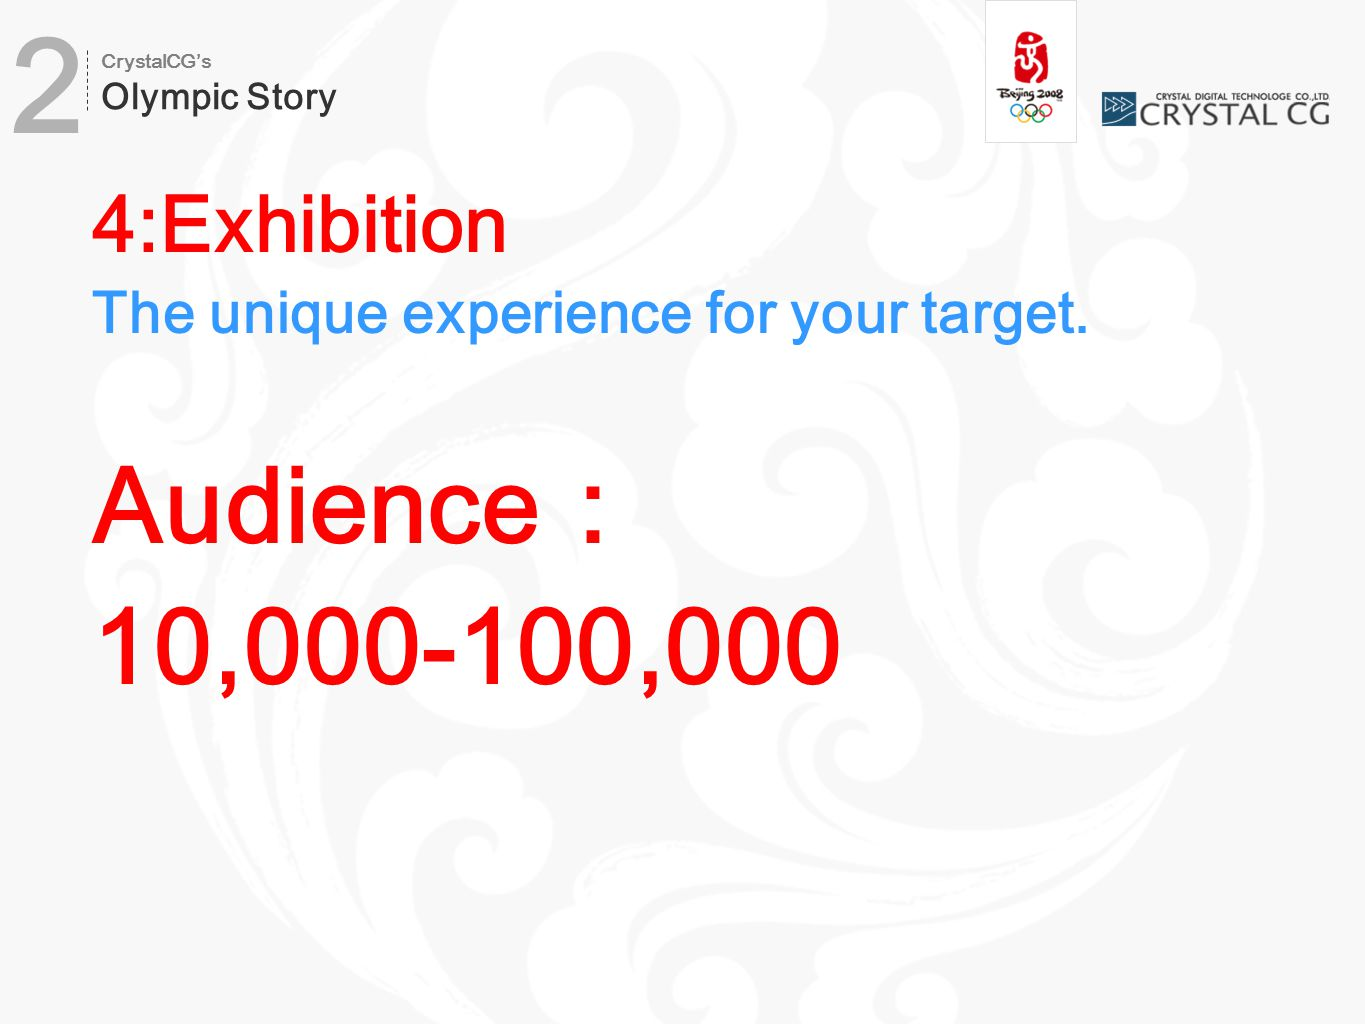 4:Exhibition The unique experience for your target. Audience: 10,000-100,000 2